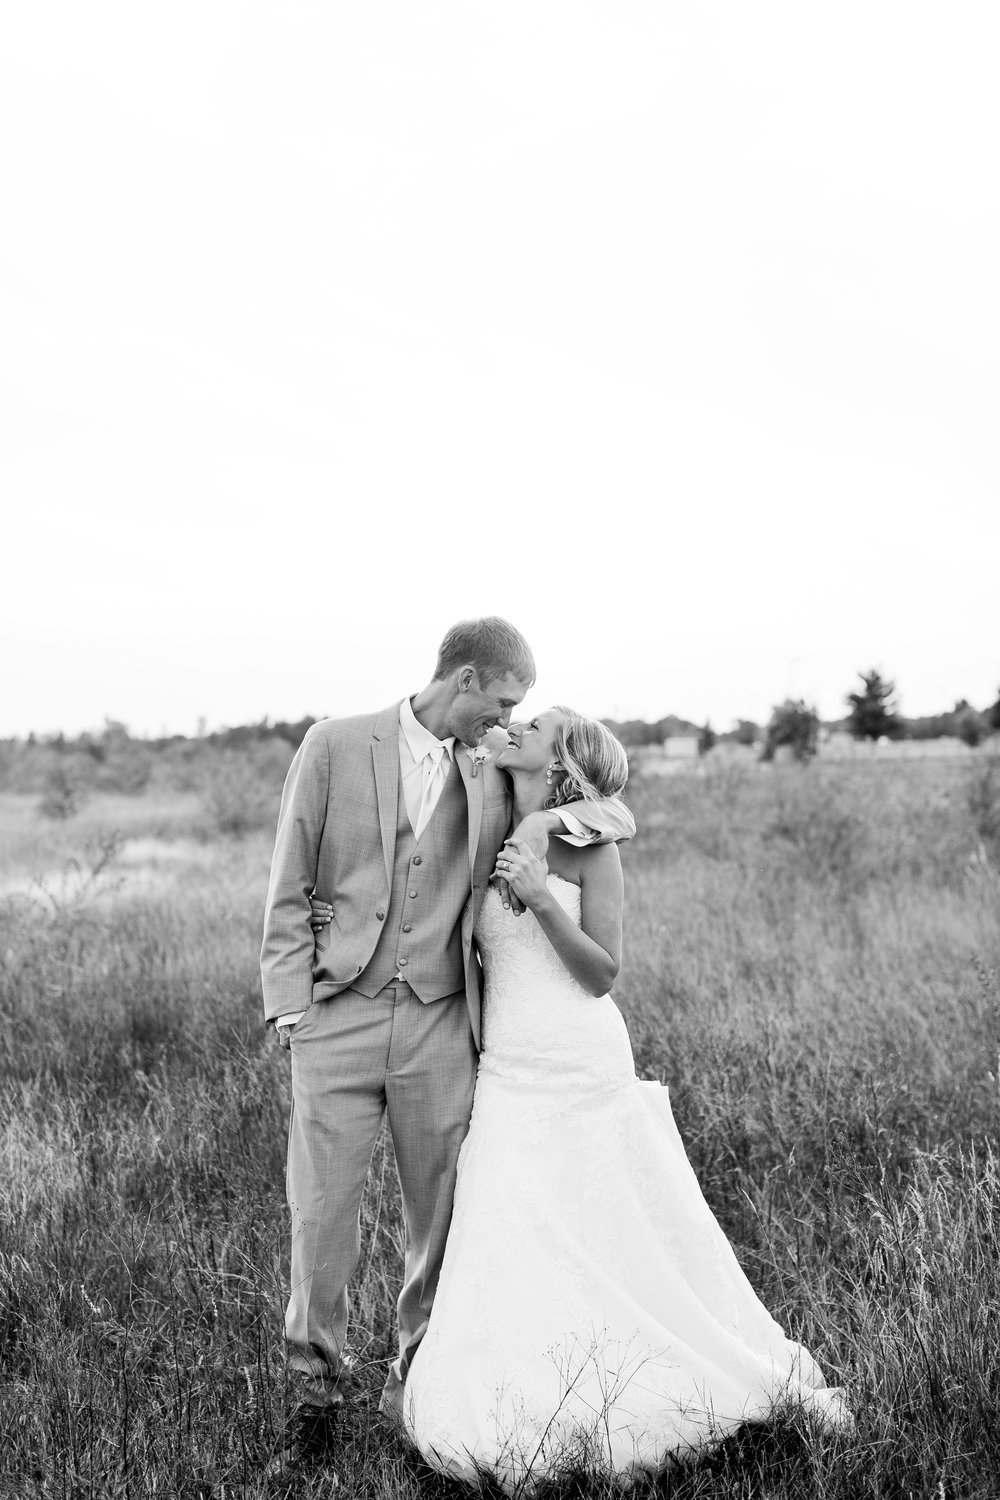 Bride and groom kissing in field in black and white Buffalo Minnesota wedding Minnesota wedding photography Mallory Kiesow Photography